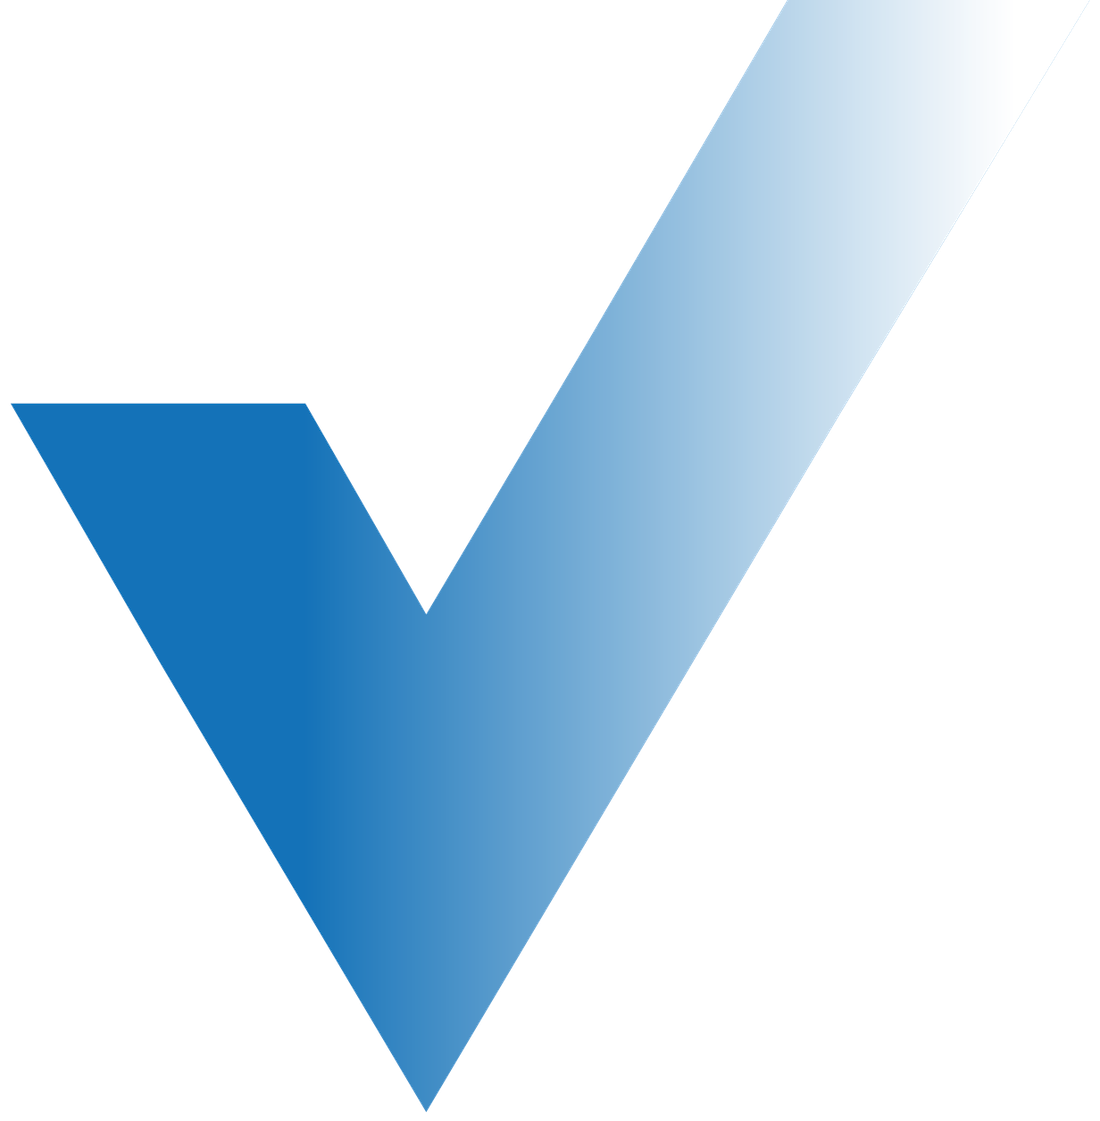 Clearvision chevron